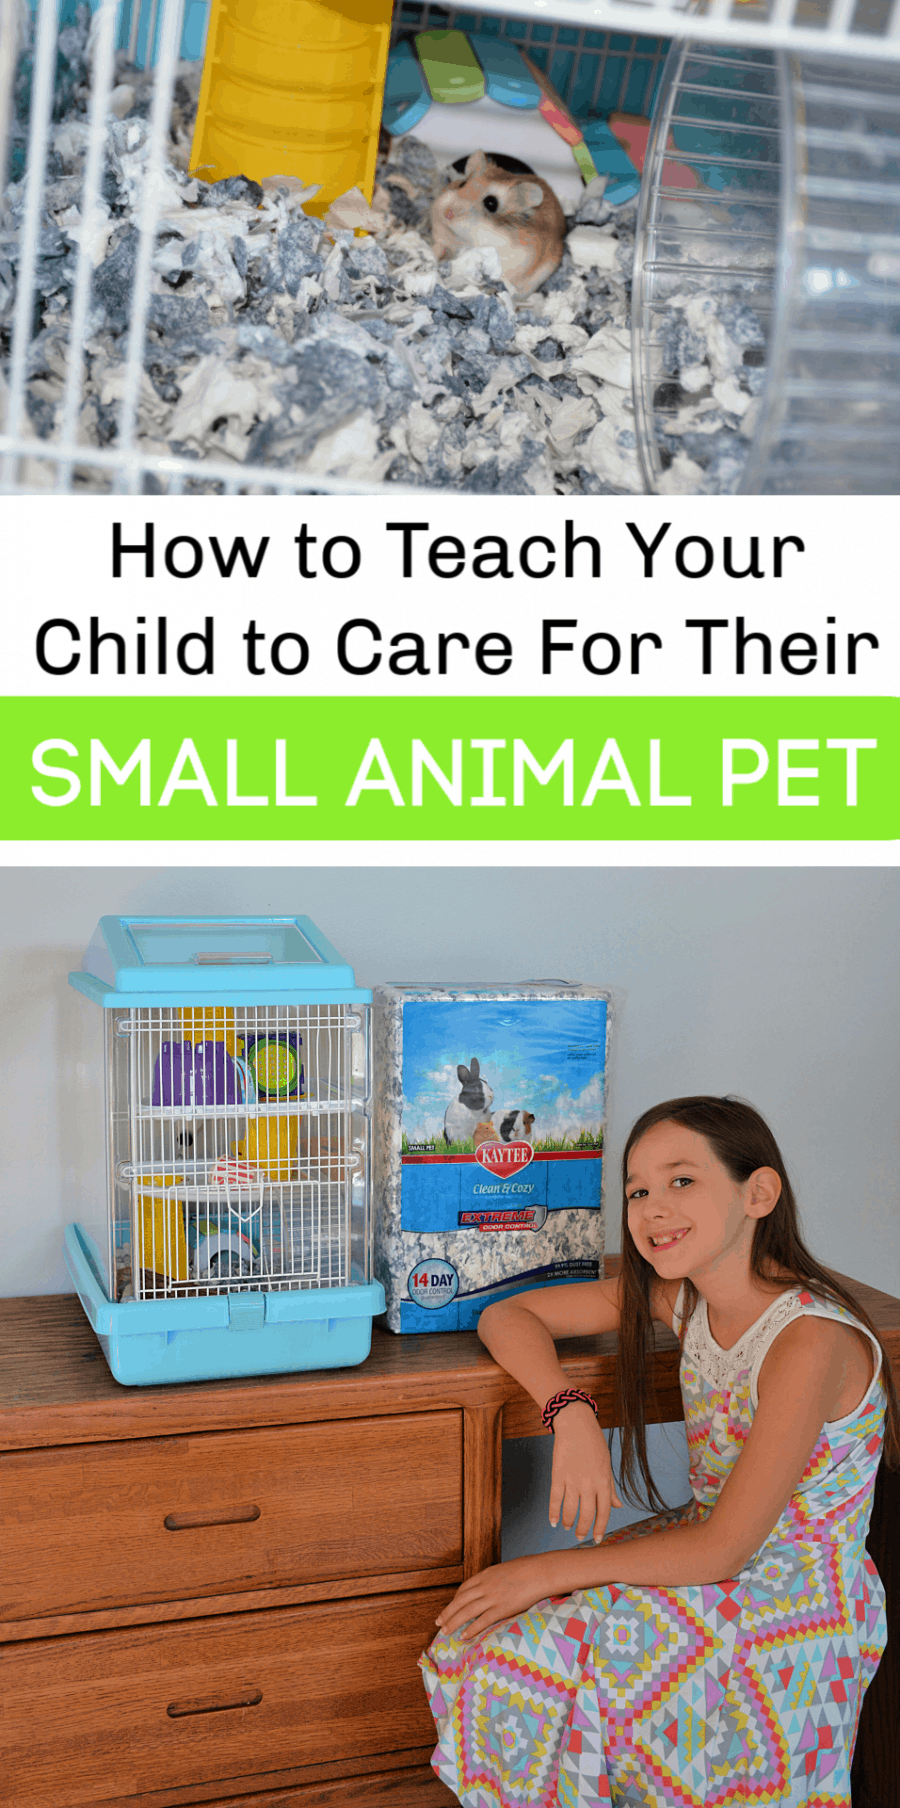 How to Teach Children to Care for Small Animals